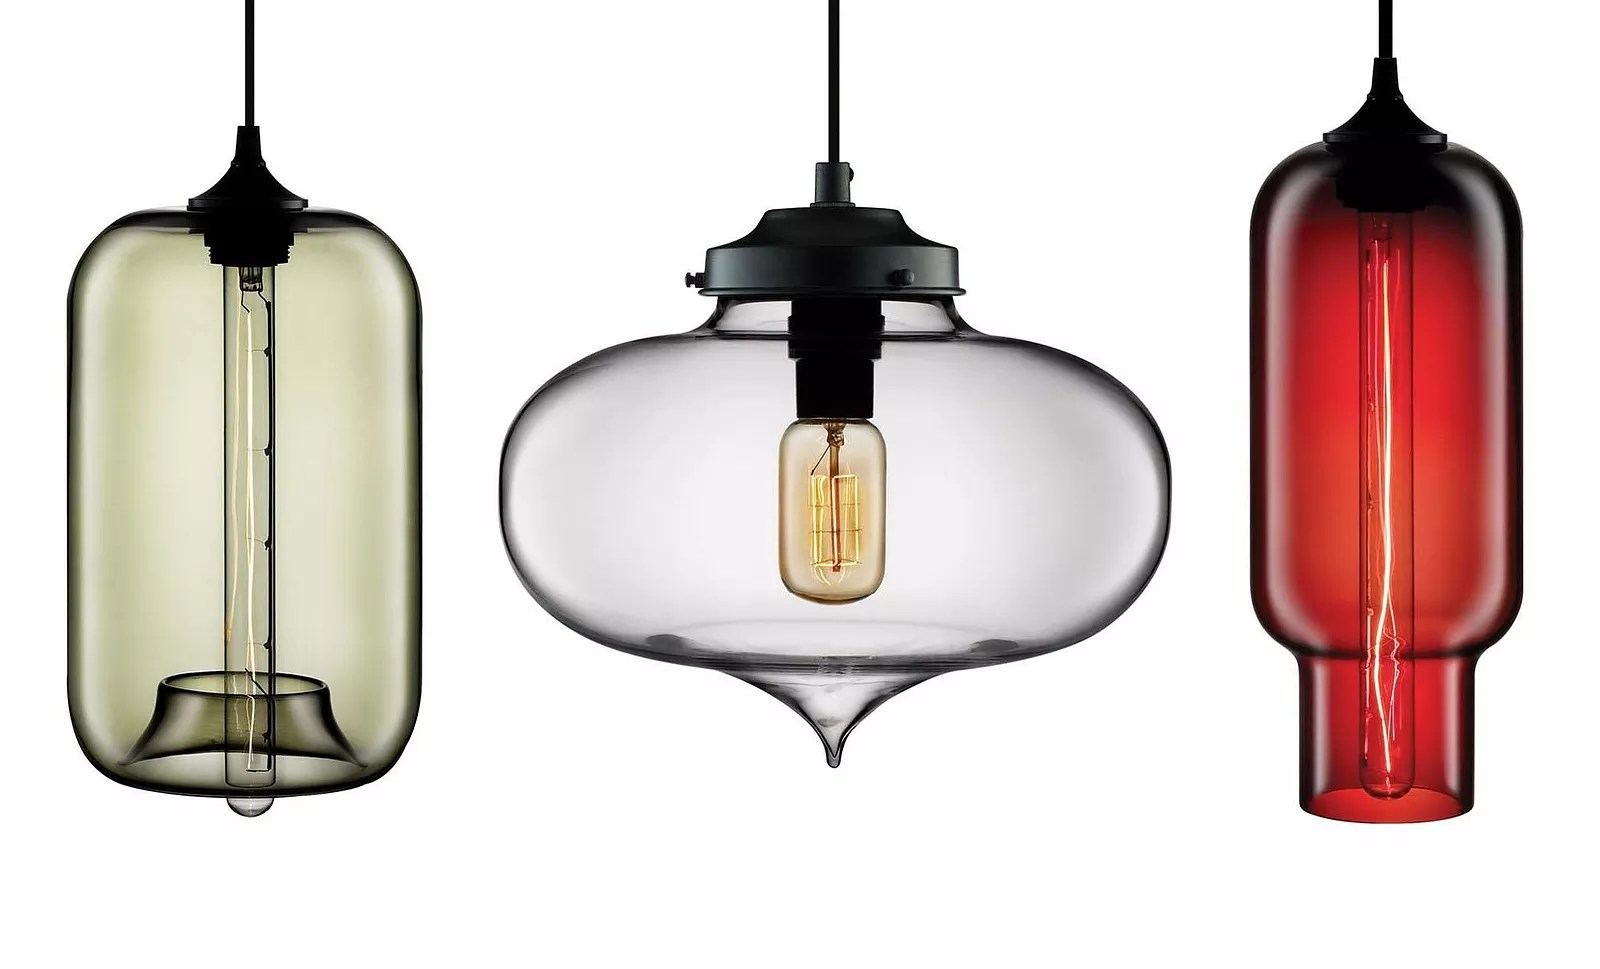 Modern Pendant Lights Stunning Pendant Lights By Niche Modern Design Is This